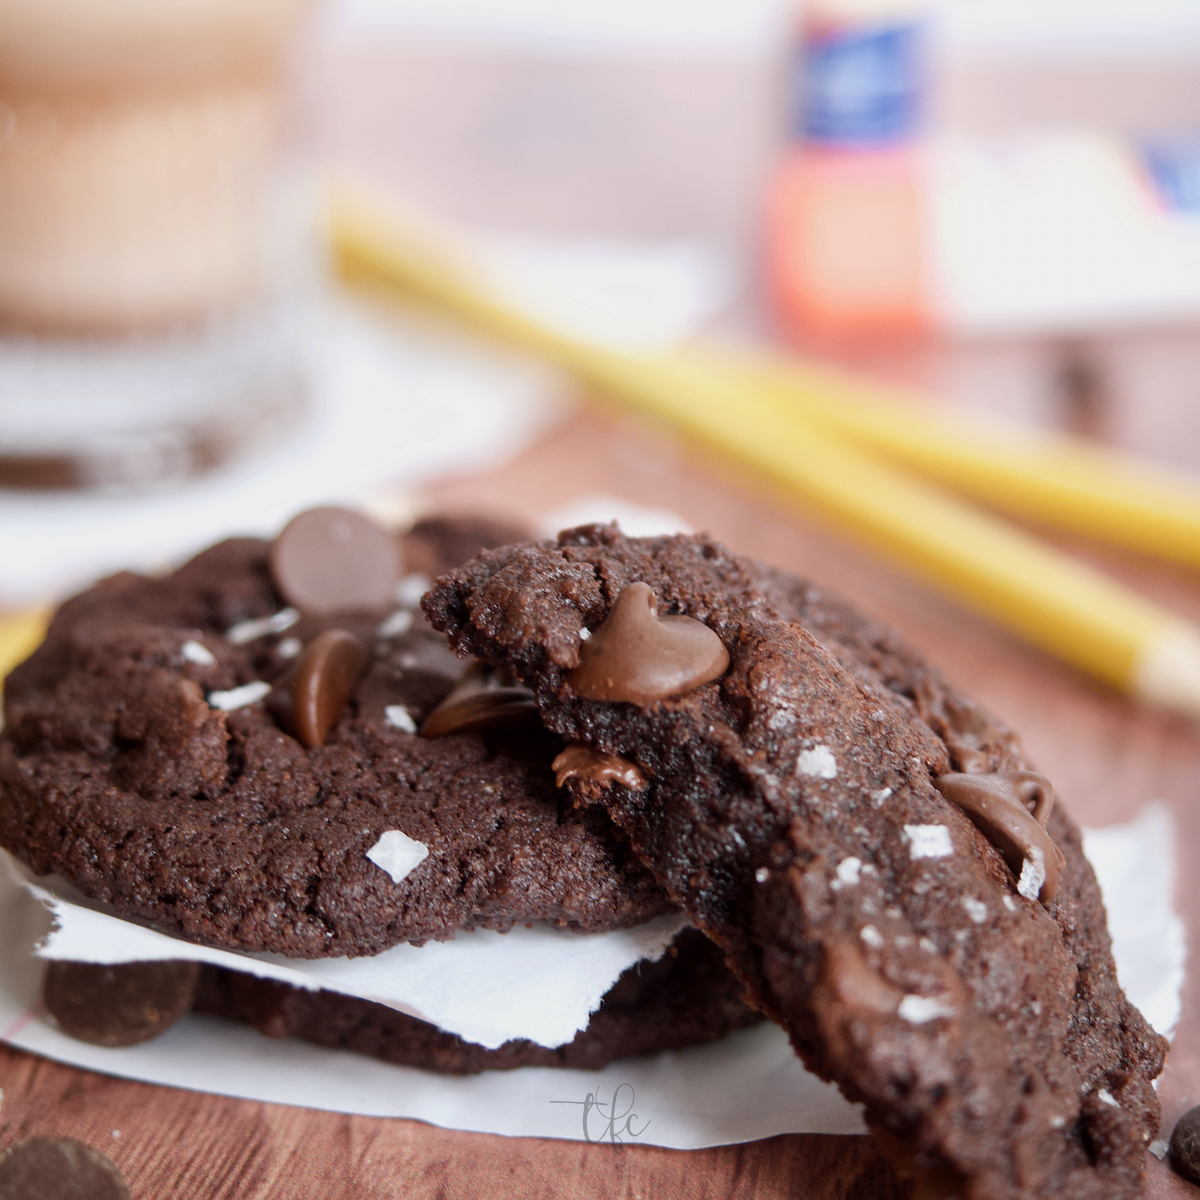 Triple Chocolate Cookies with one broken open to reveal a dark, fudgy center.